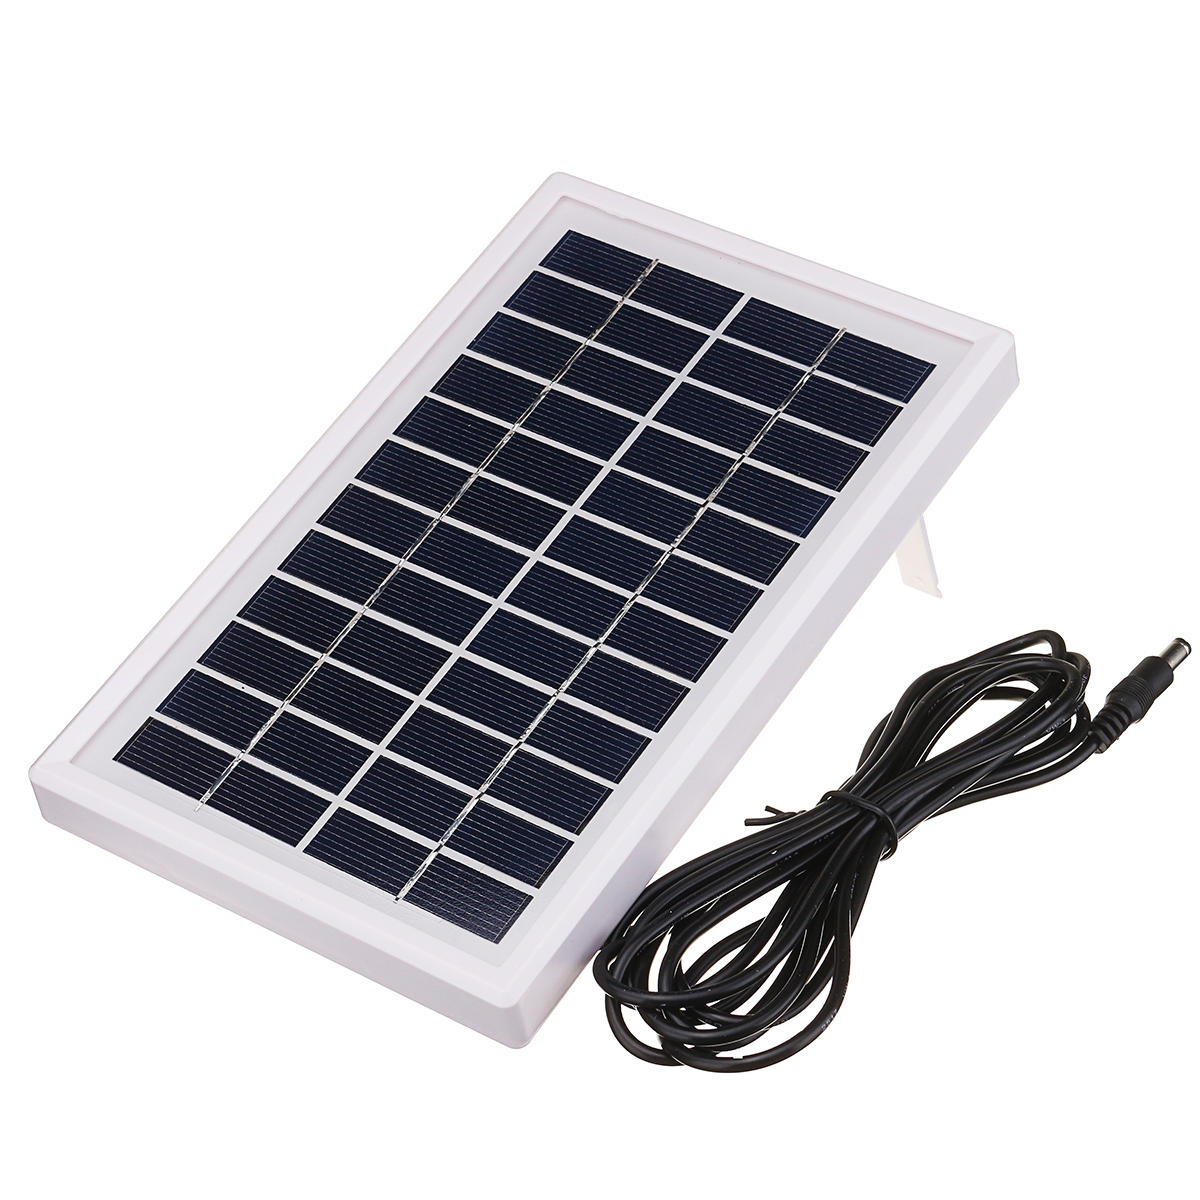 Us 13 17 3w 12v Mini Polycrystalline Silicon Solar Panels Diy Powered Kit System Arduino Compatible Scm Diy Kits From Electronics On Banggood Com Diy Solar Panel Solar Panels Silicon Solar